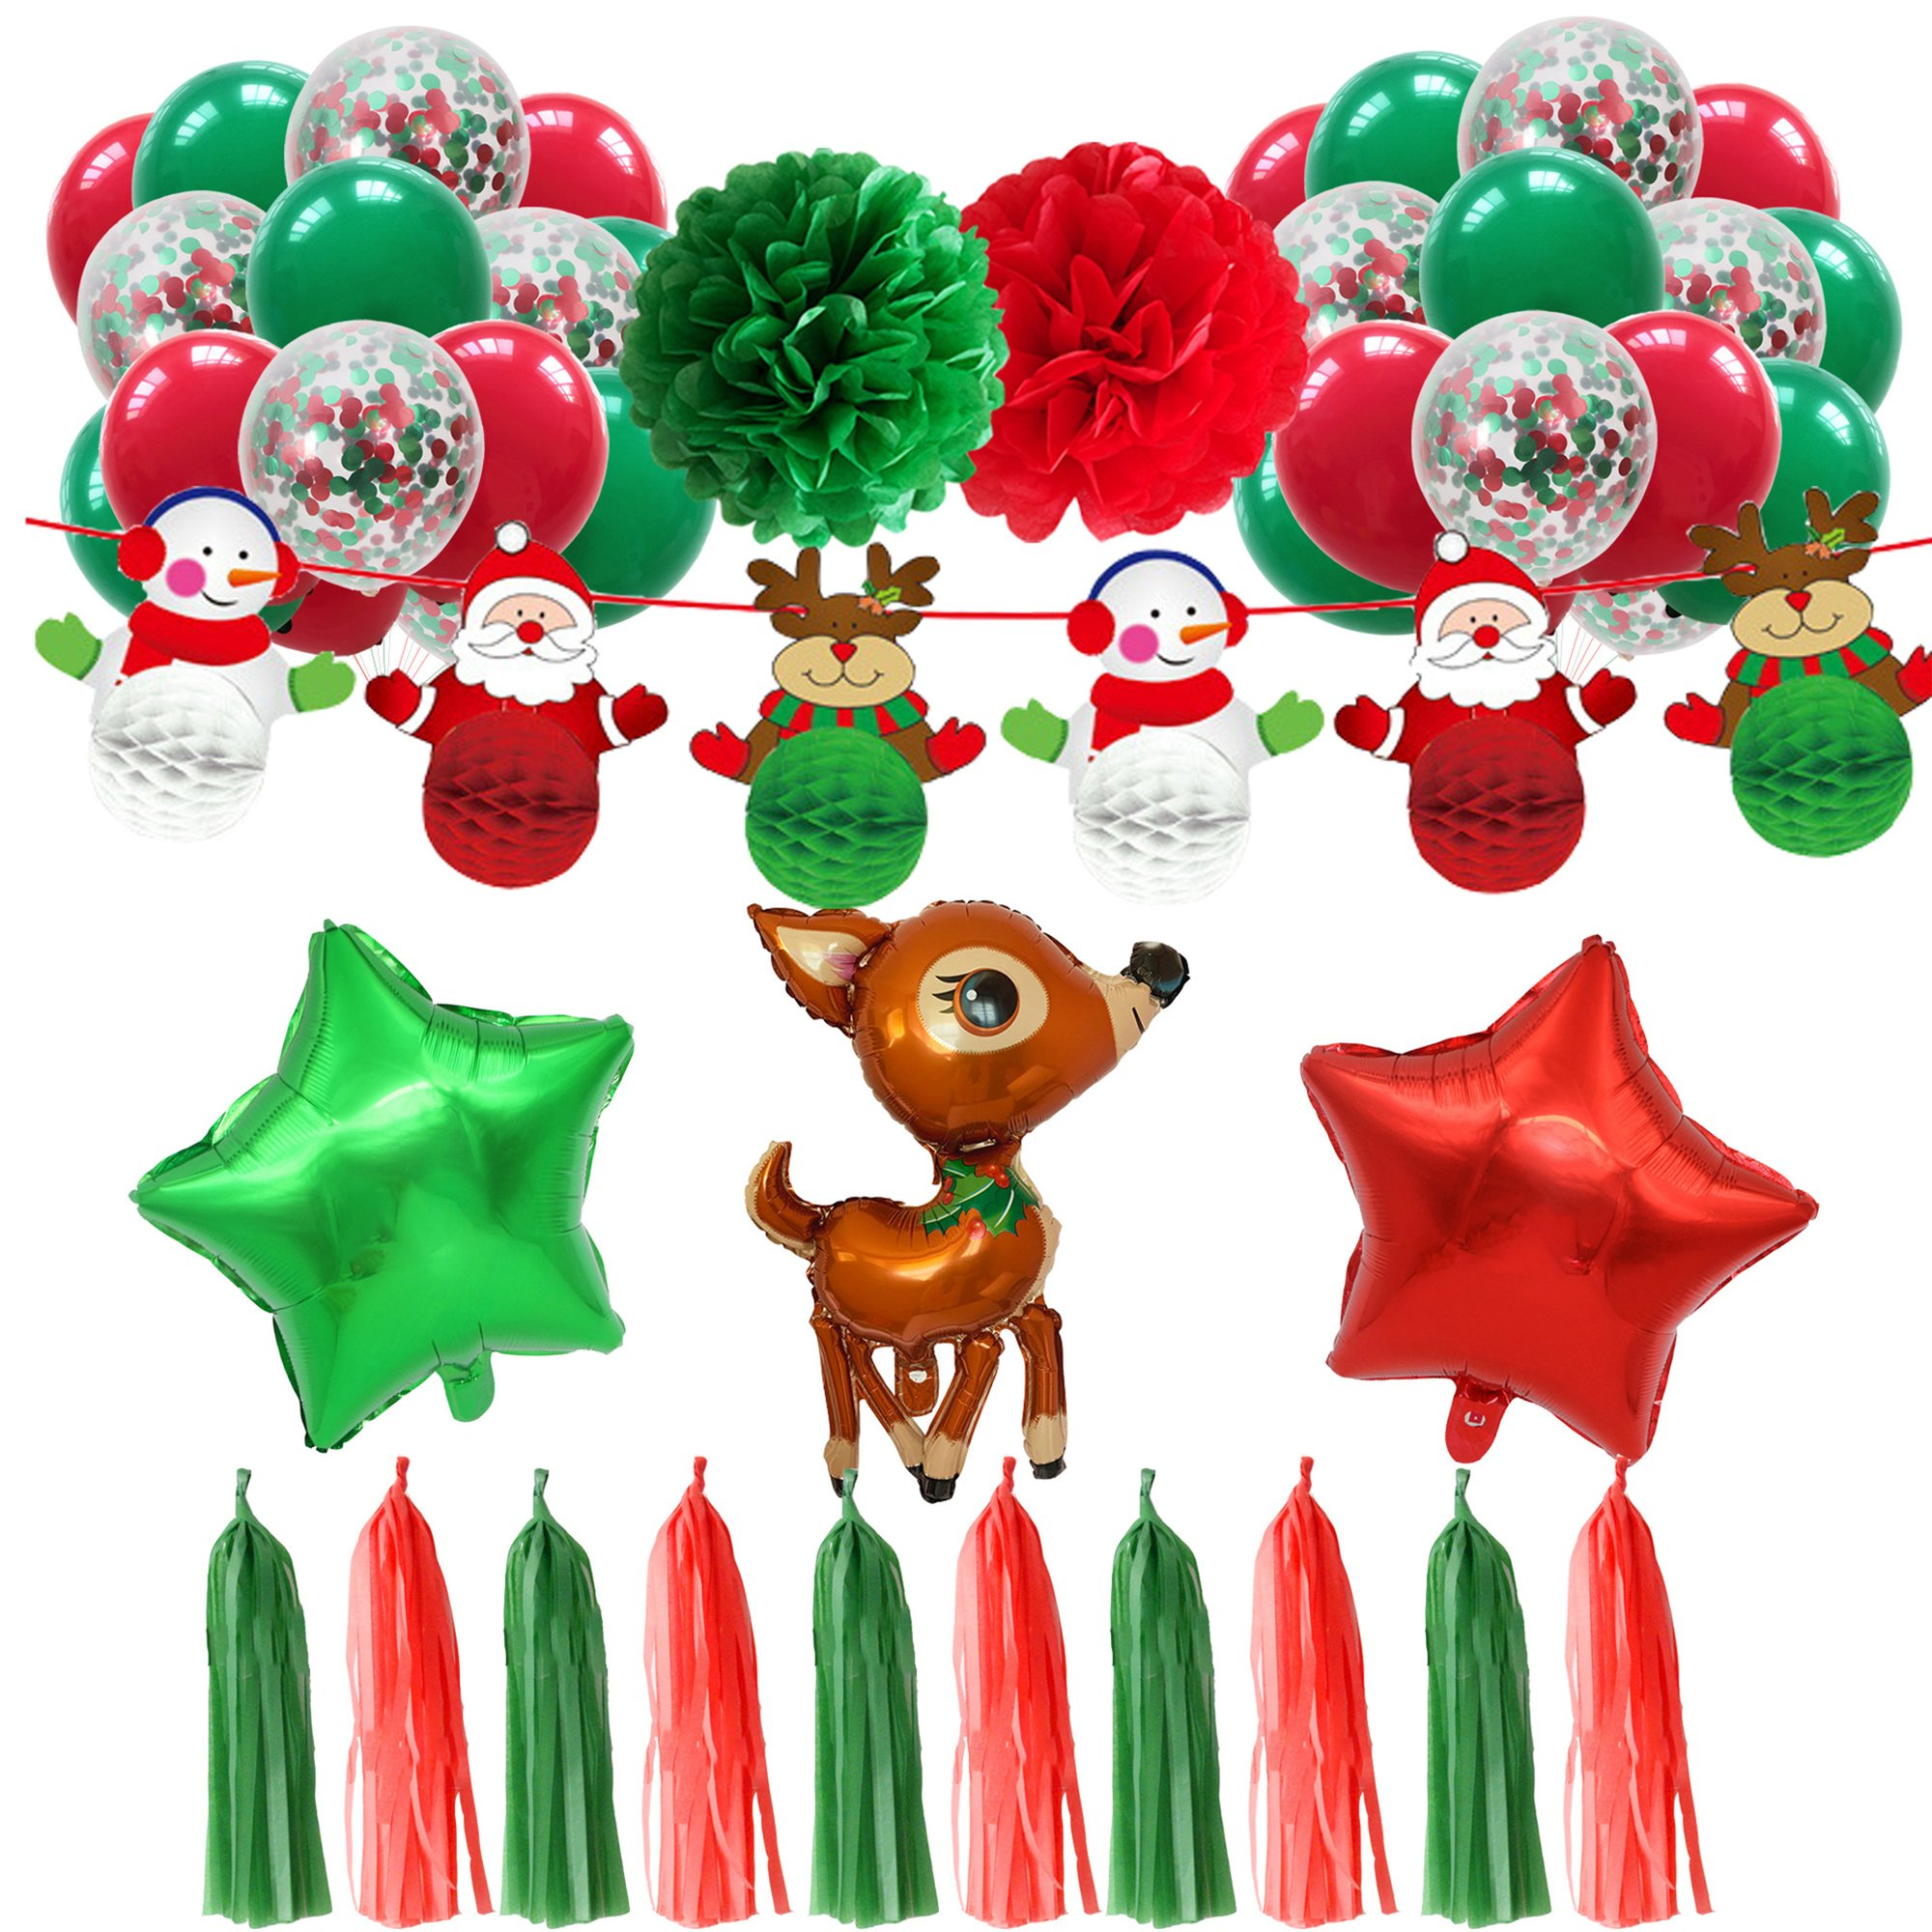 46Pcs Christmas Balloon Party Decoration Pack